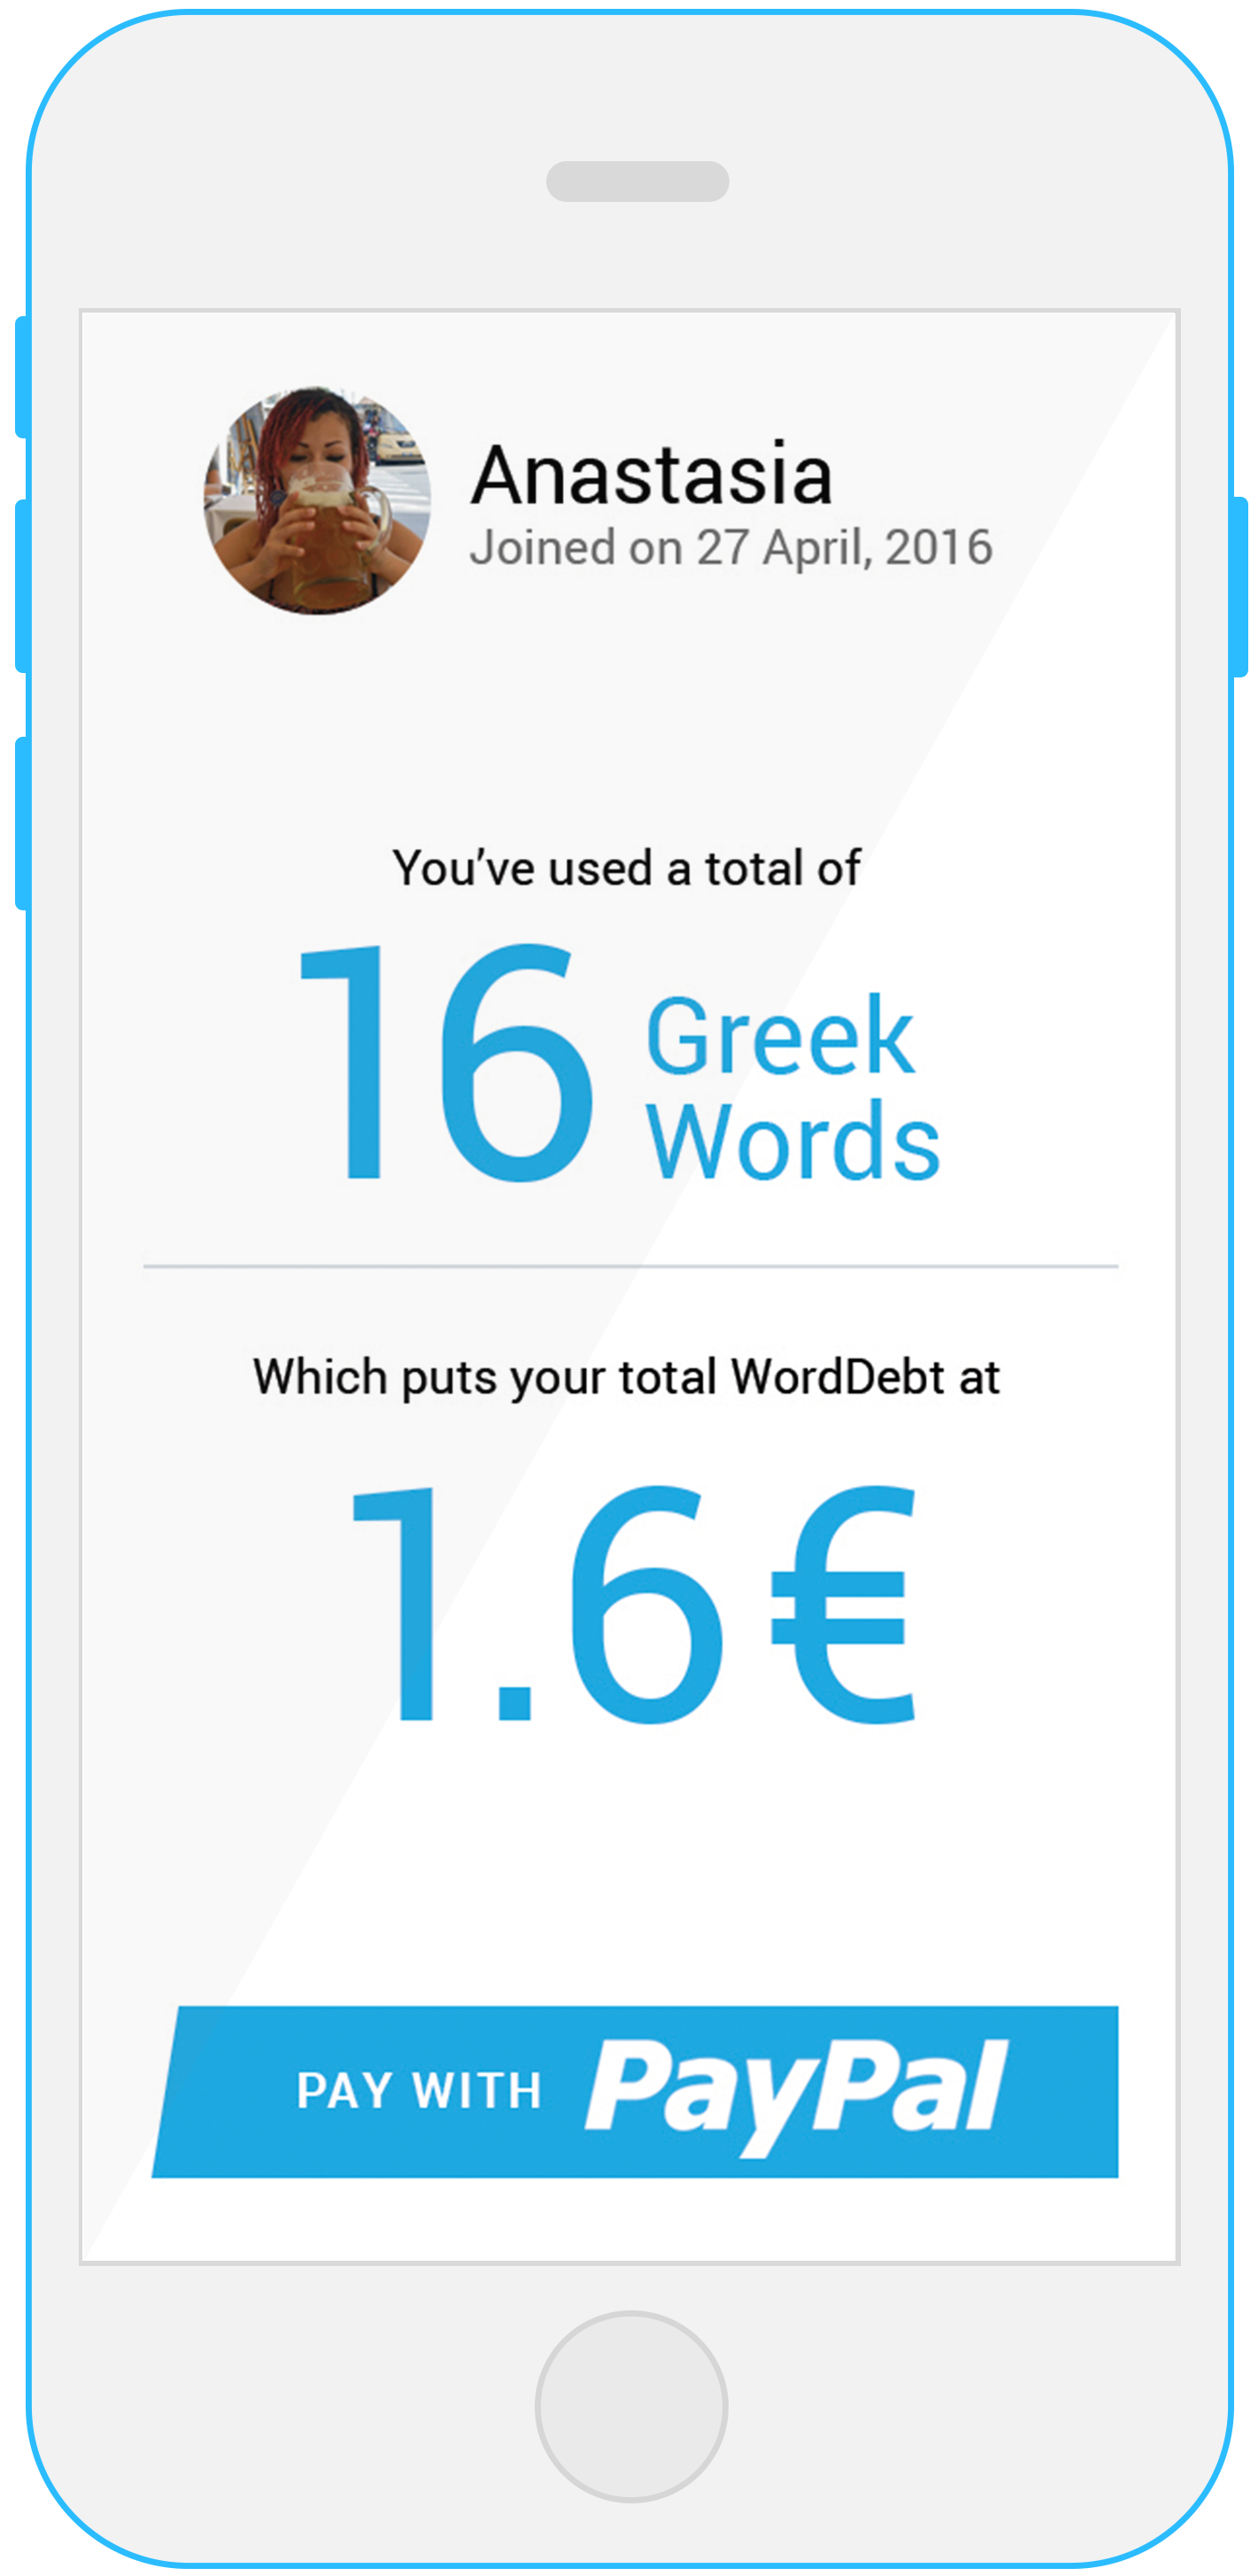 1 WORD = 0.10€ - Donate 0.10€ to Greek education for every Greek word used.